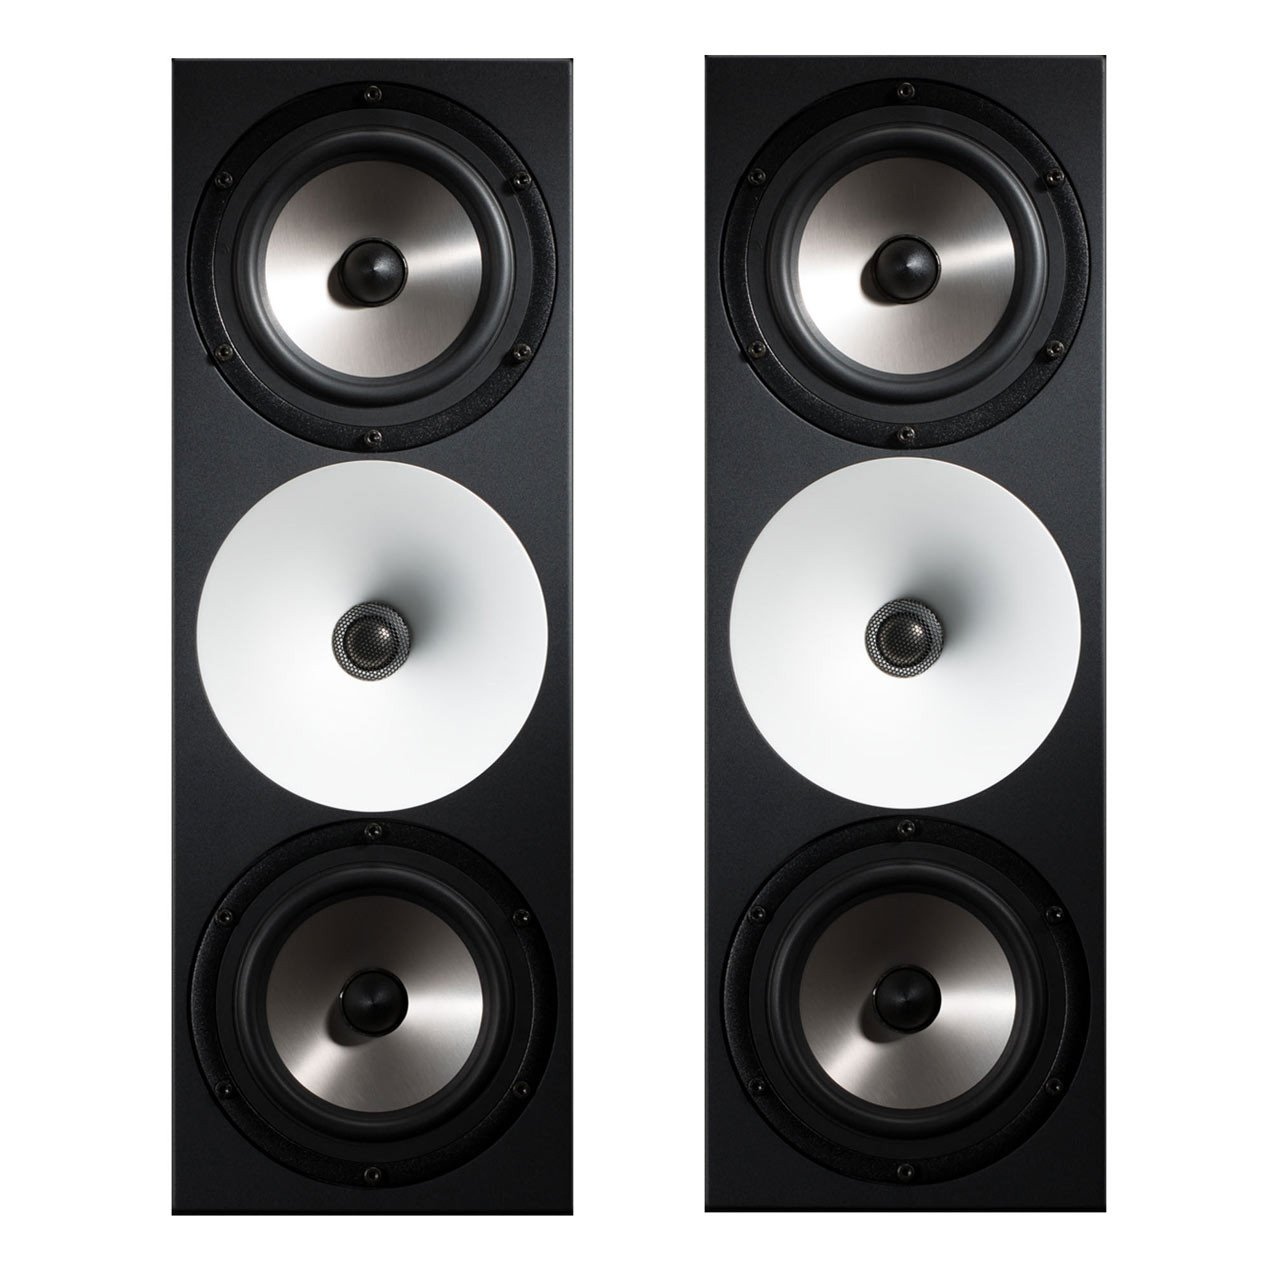 Amphion two18 Passive 2-way Studio Monitors (PAIR)